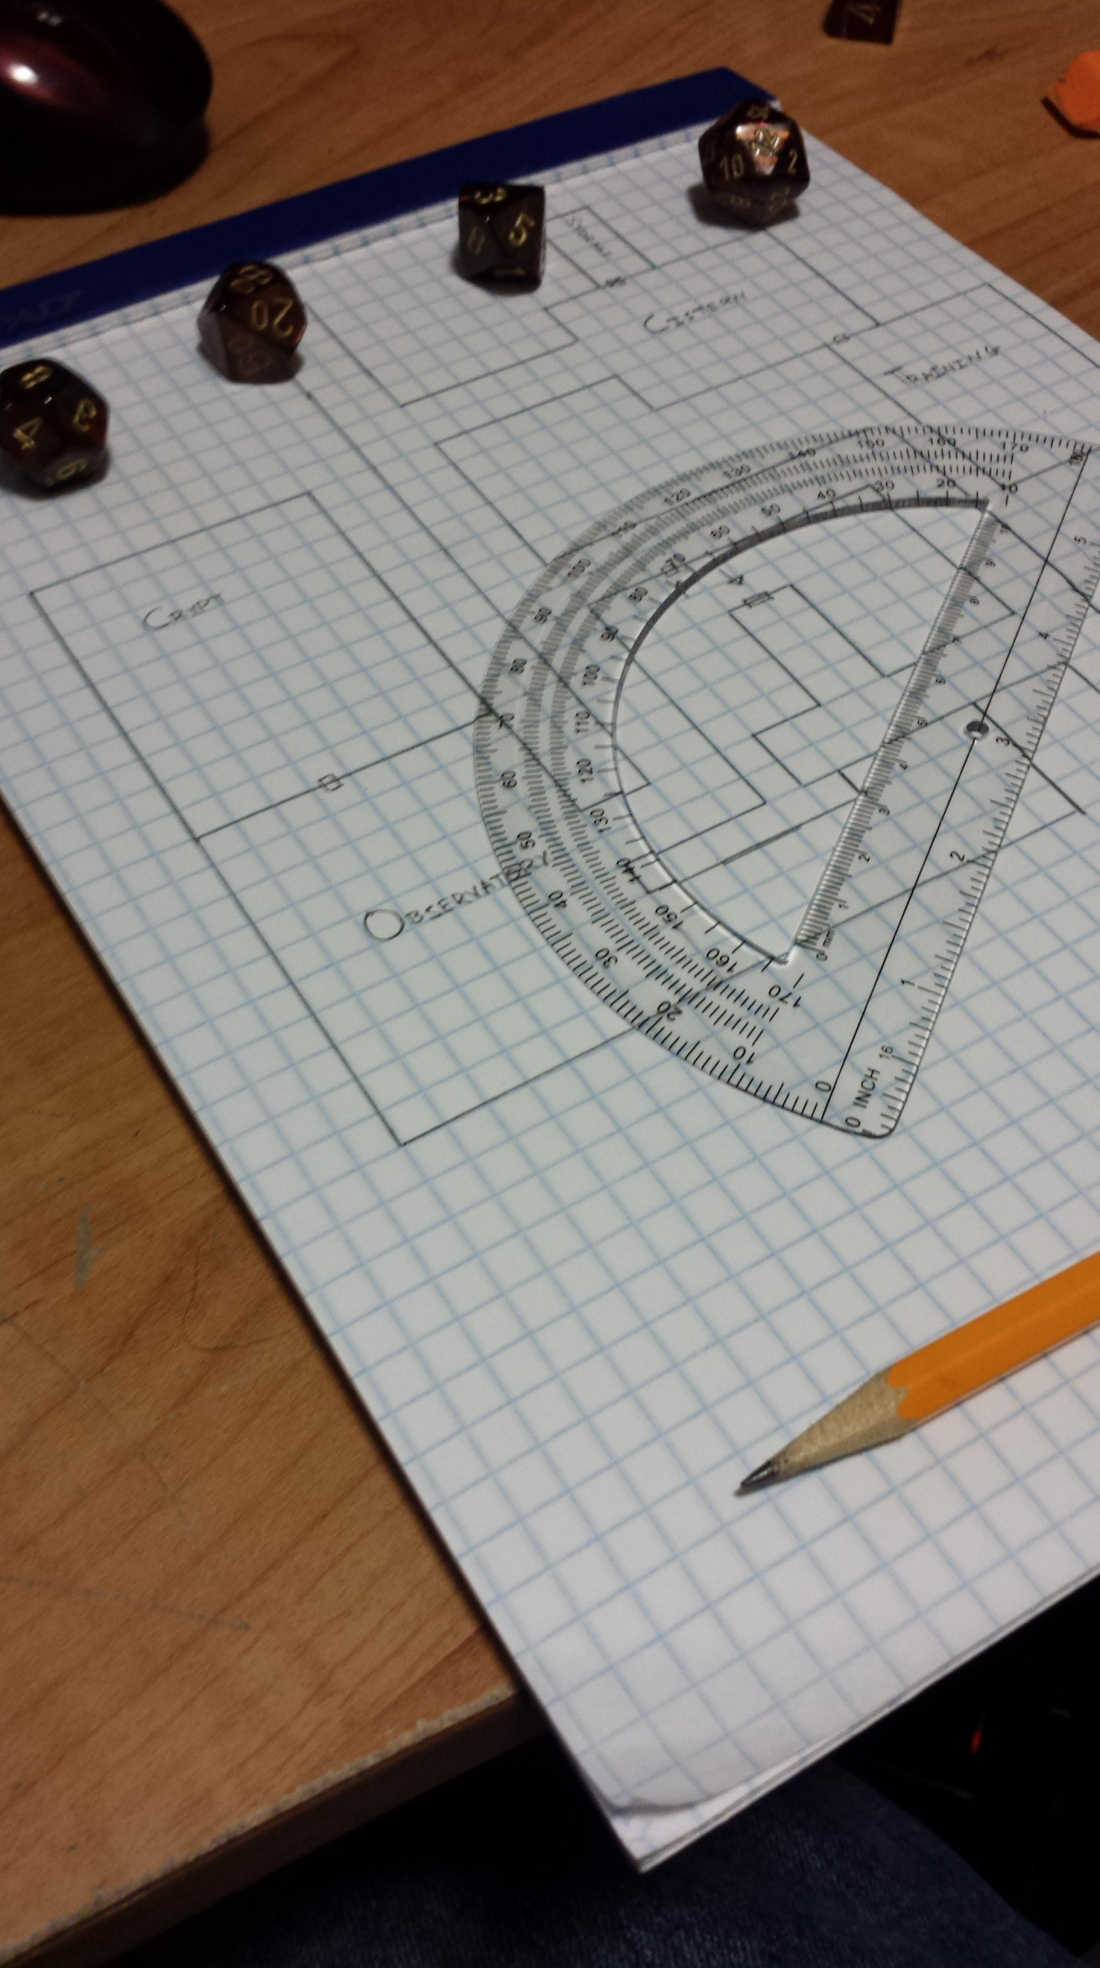 Hand-drawn map on graph paper with dice, pencil, and protractor